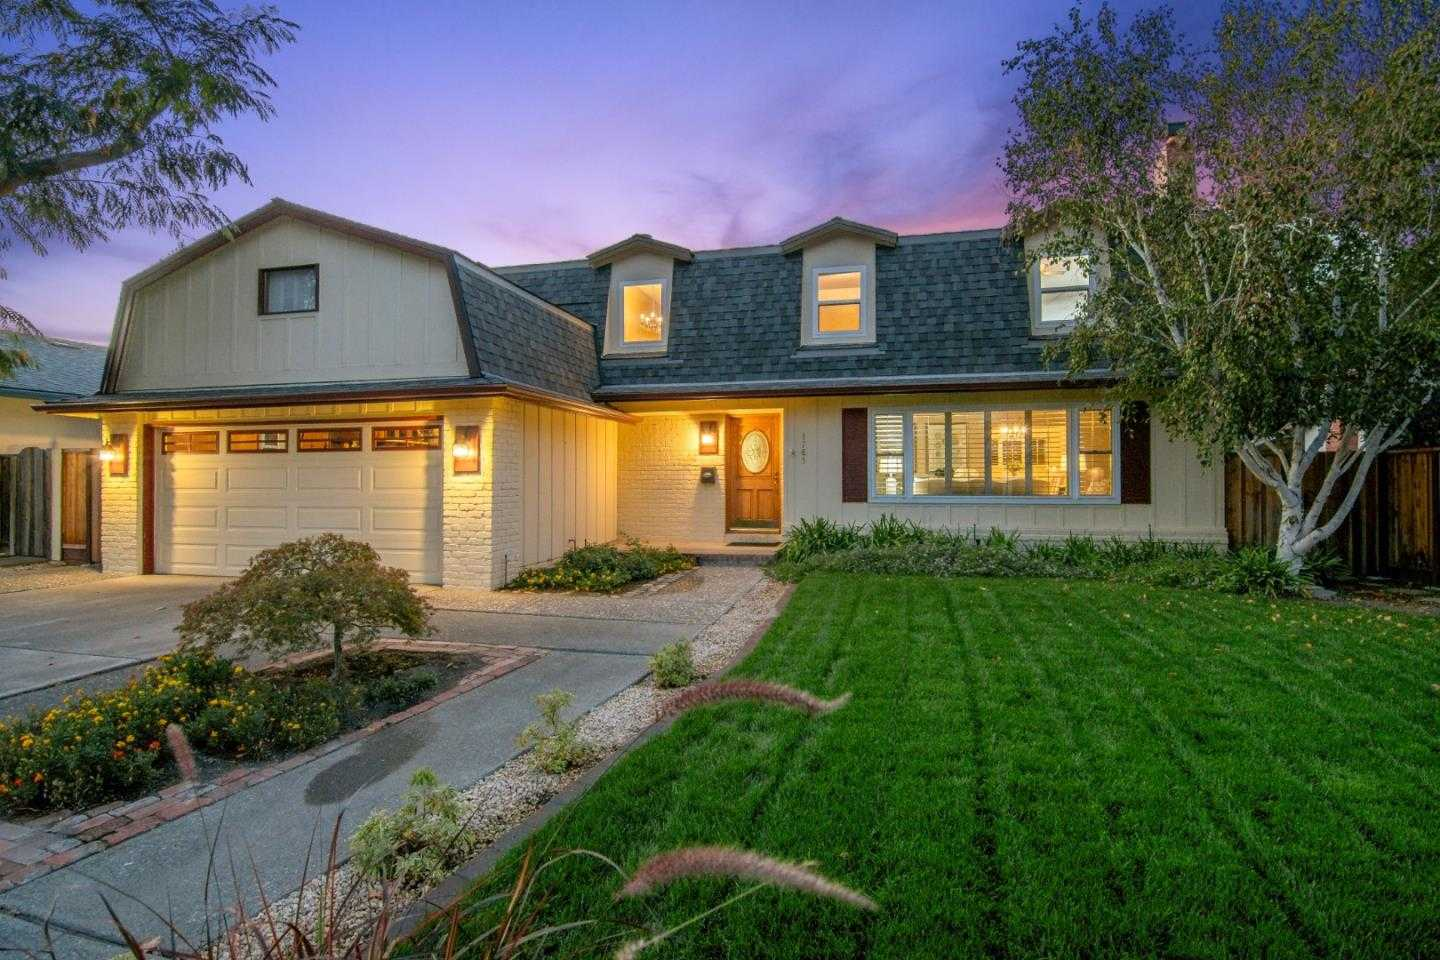 $1,500,000 - 4Br/3Ba -  for Sale in San Jose